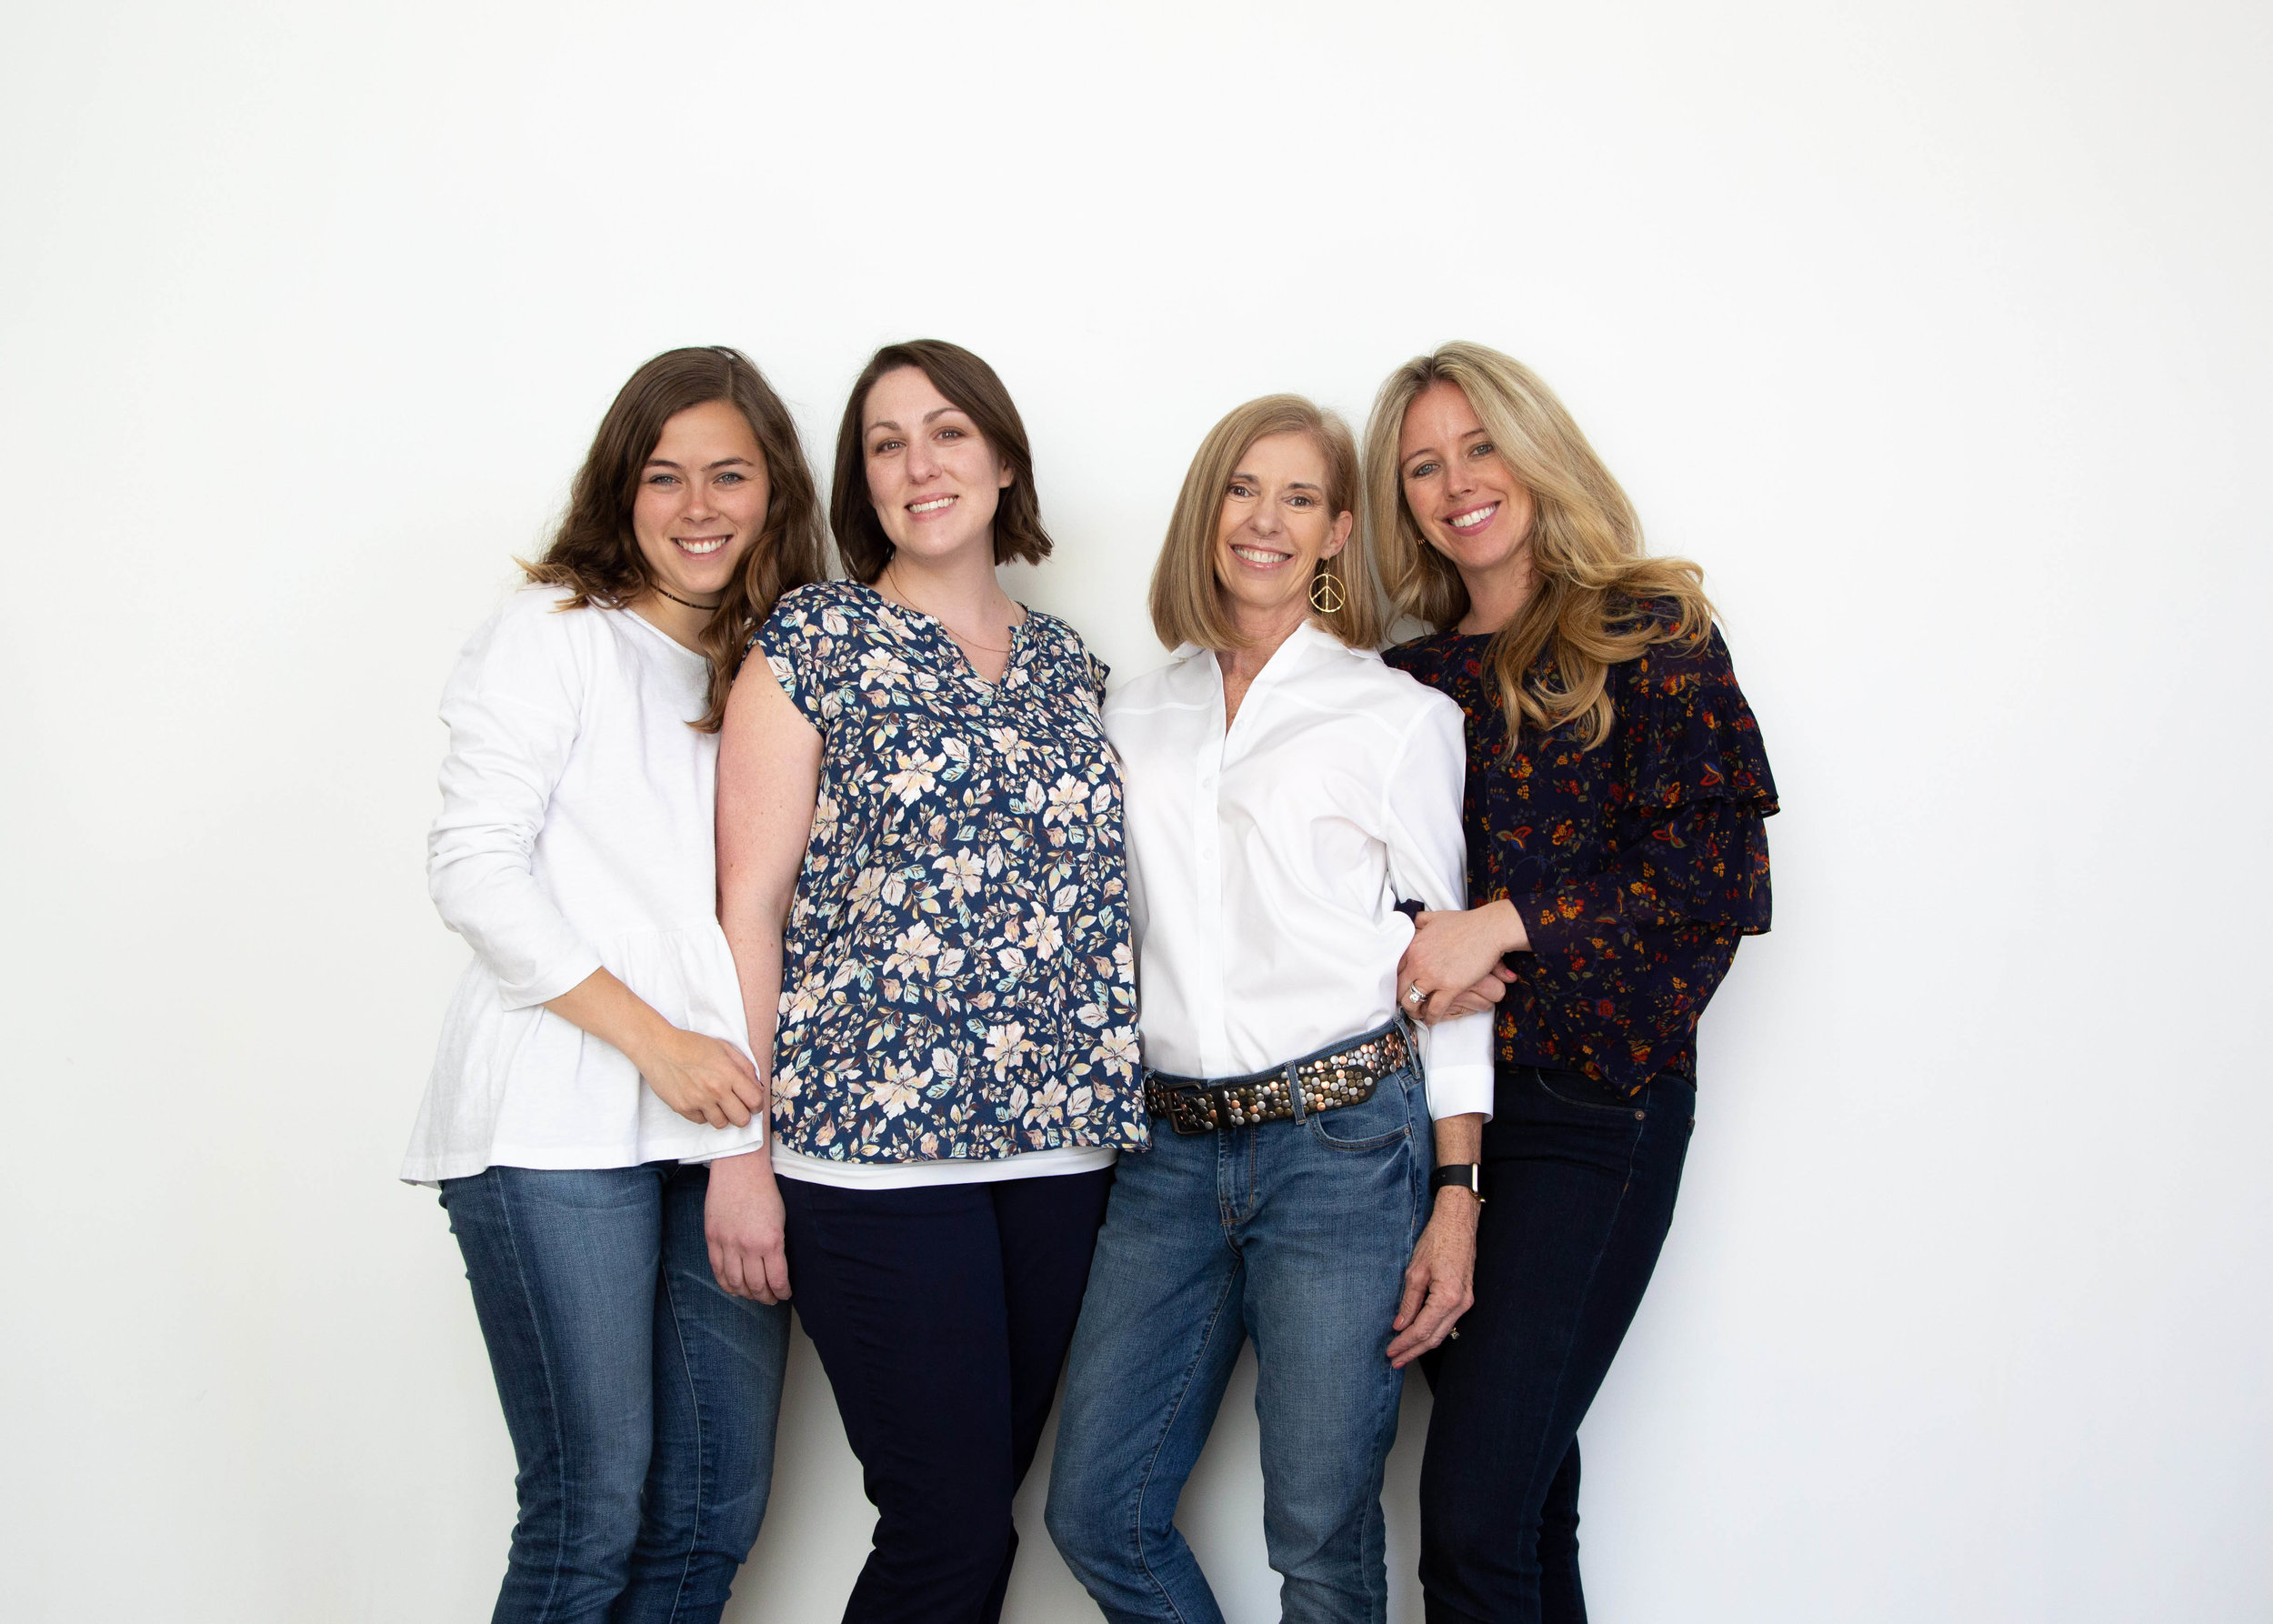 The Dallas Doing Good leadership team. L to R - Hunter Lacey, Mary Martin, Jan Osborn, Rachel Brown. Photo by Hunter Lacey.